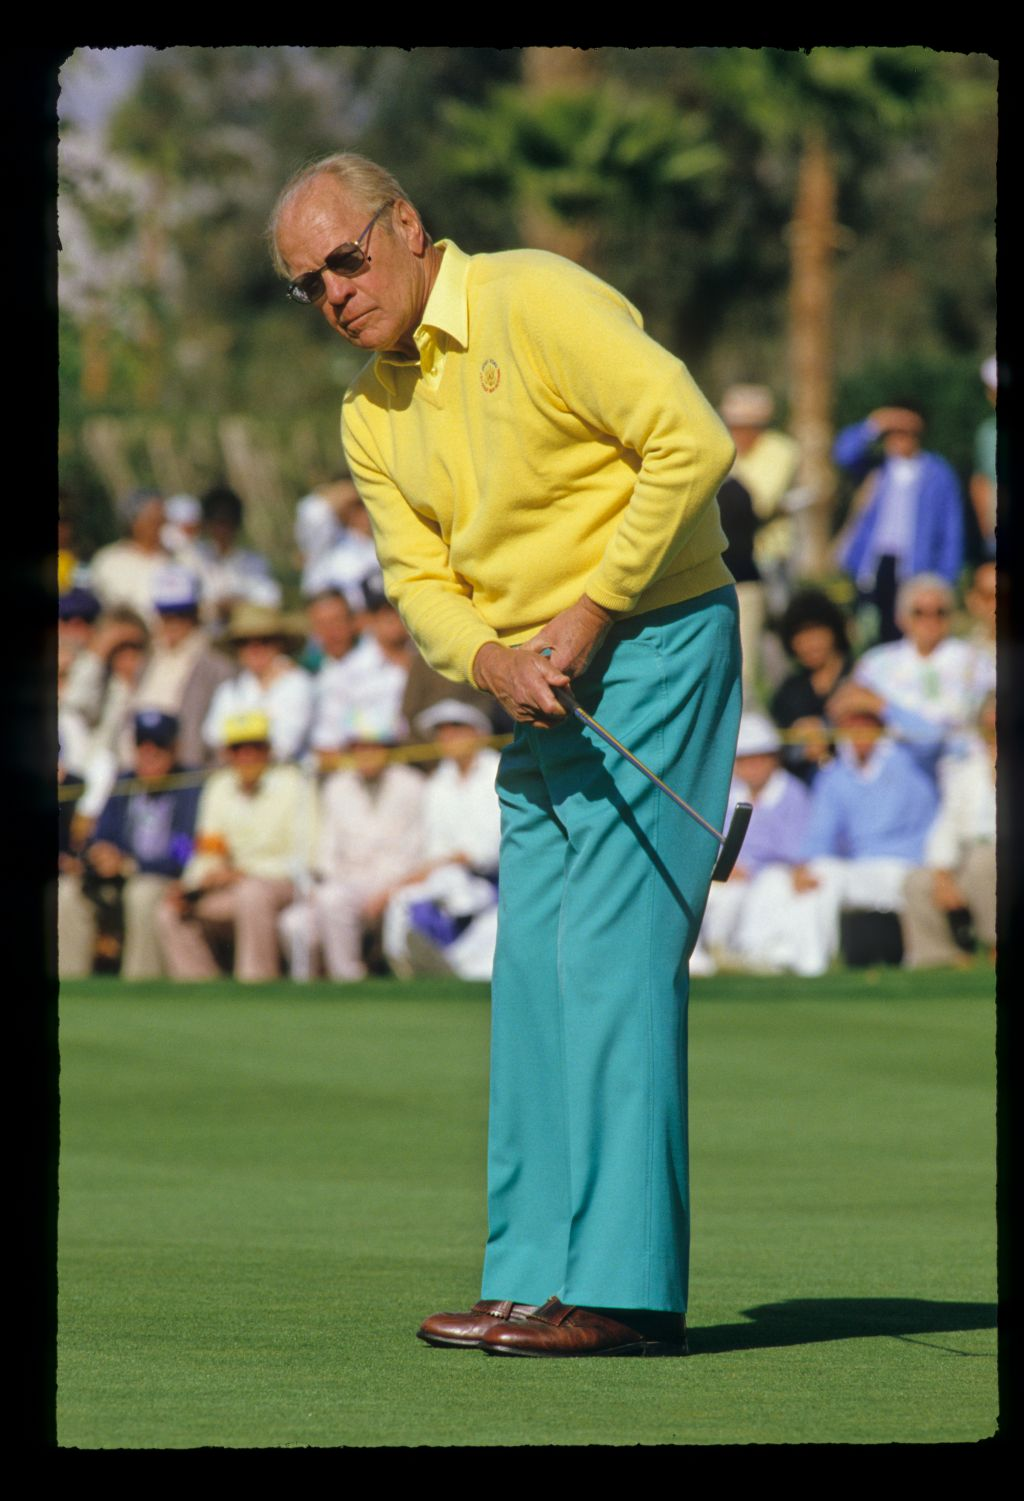 President Gerald Ford on the green at the Bob Hope Chrysler Classic Golf Championship